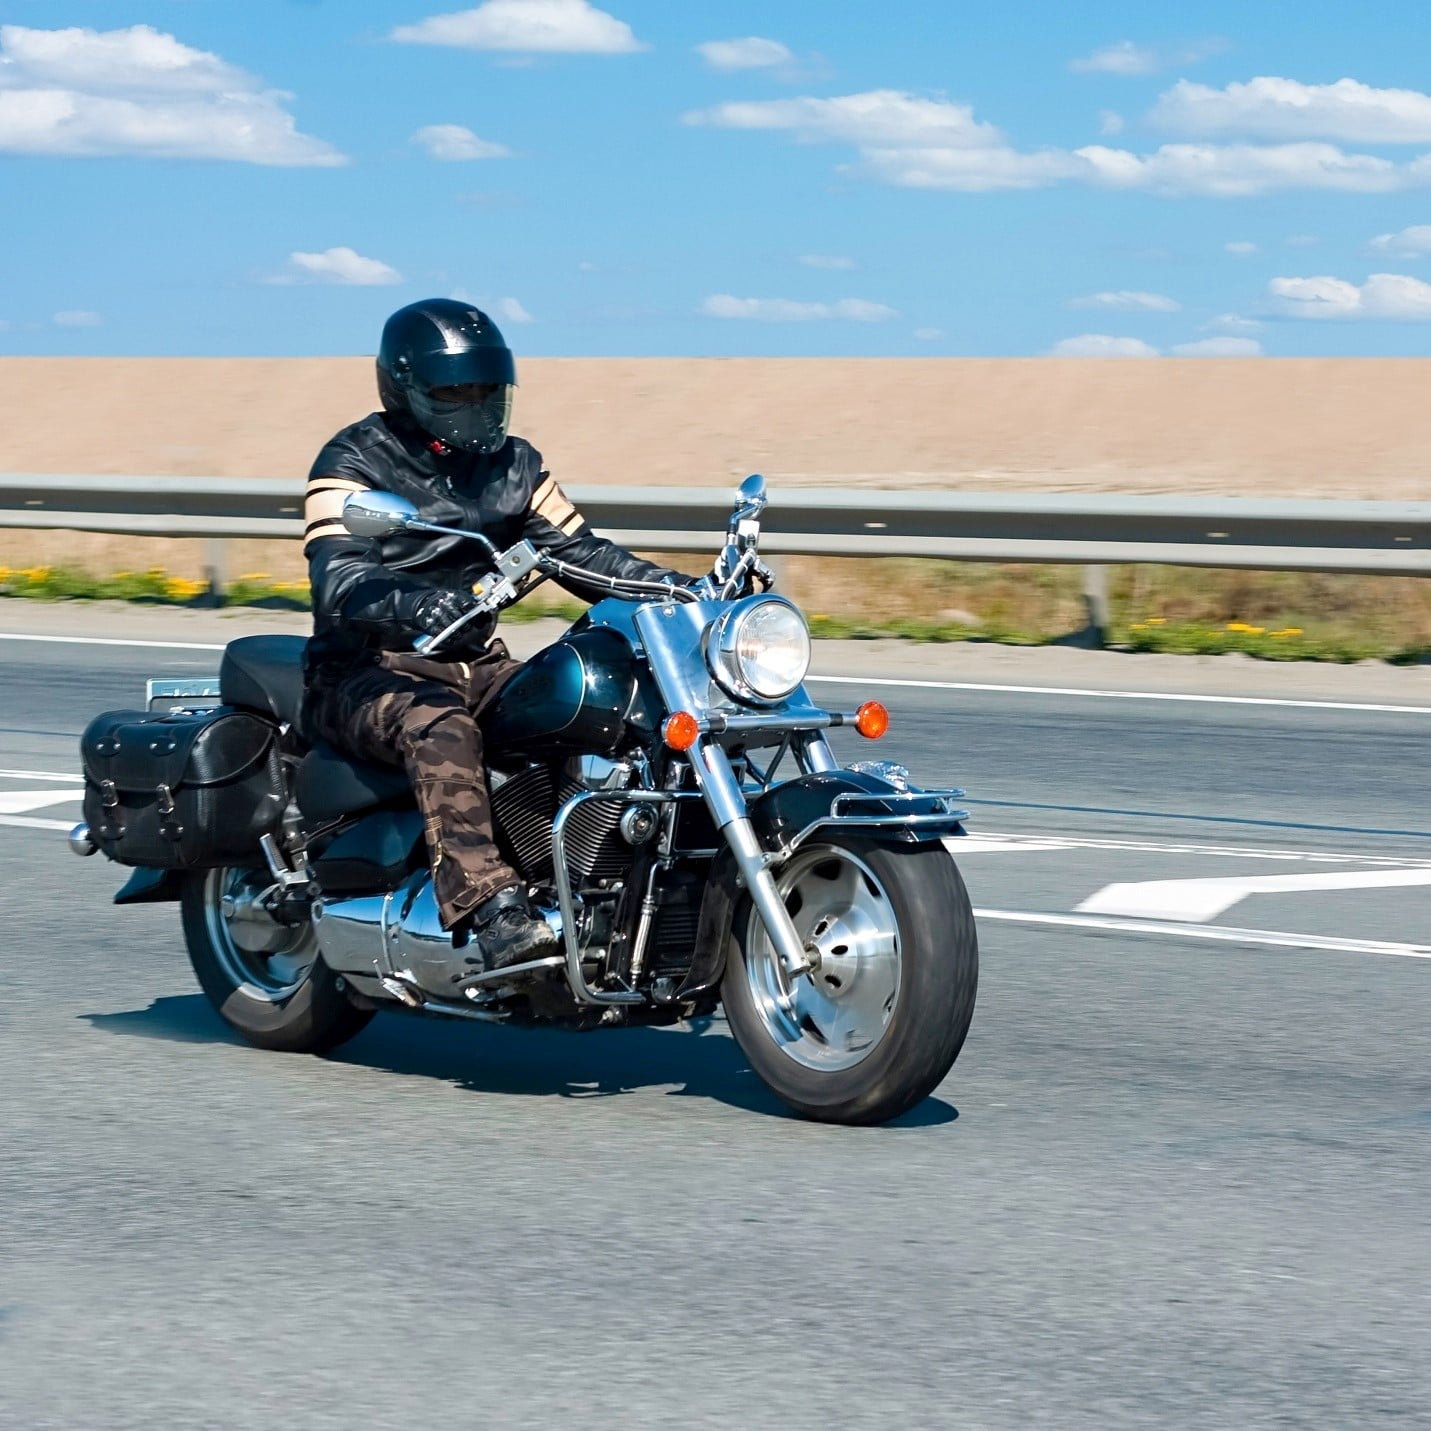 Top 5 Tips for Motorcycle Safety